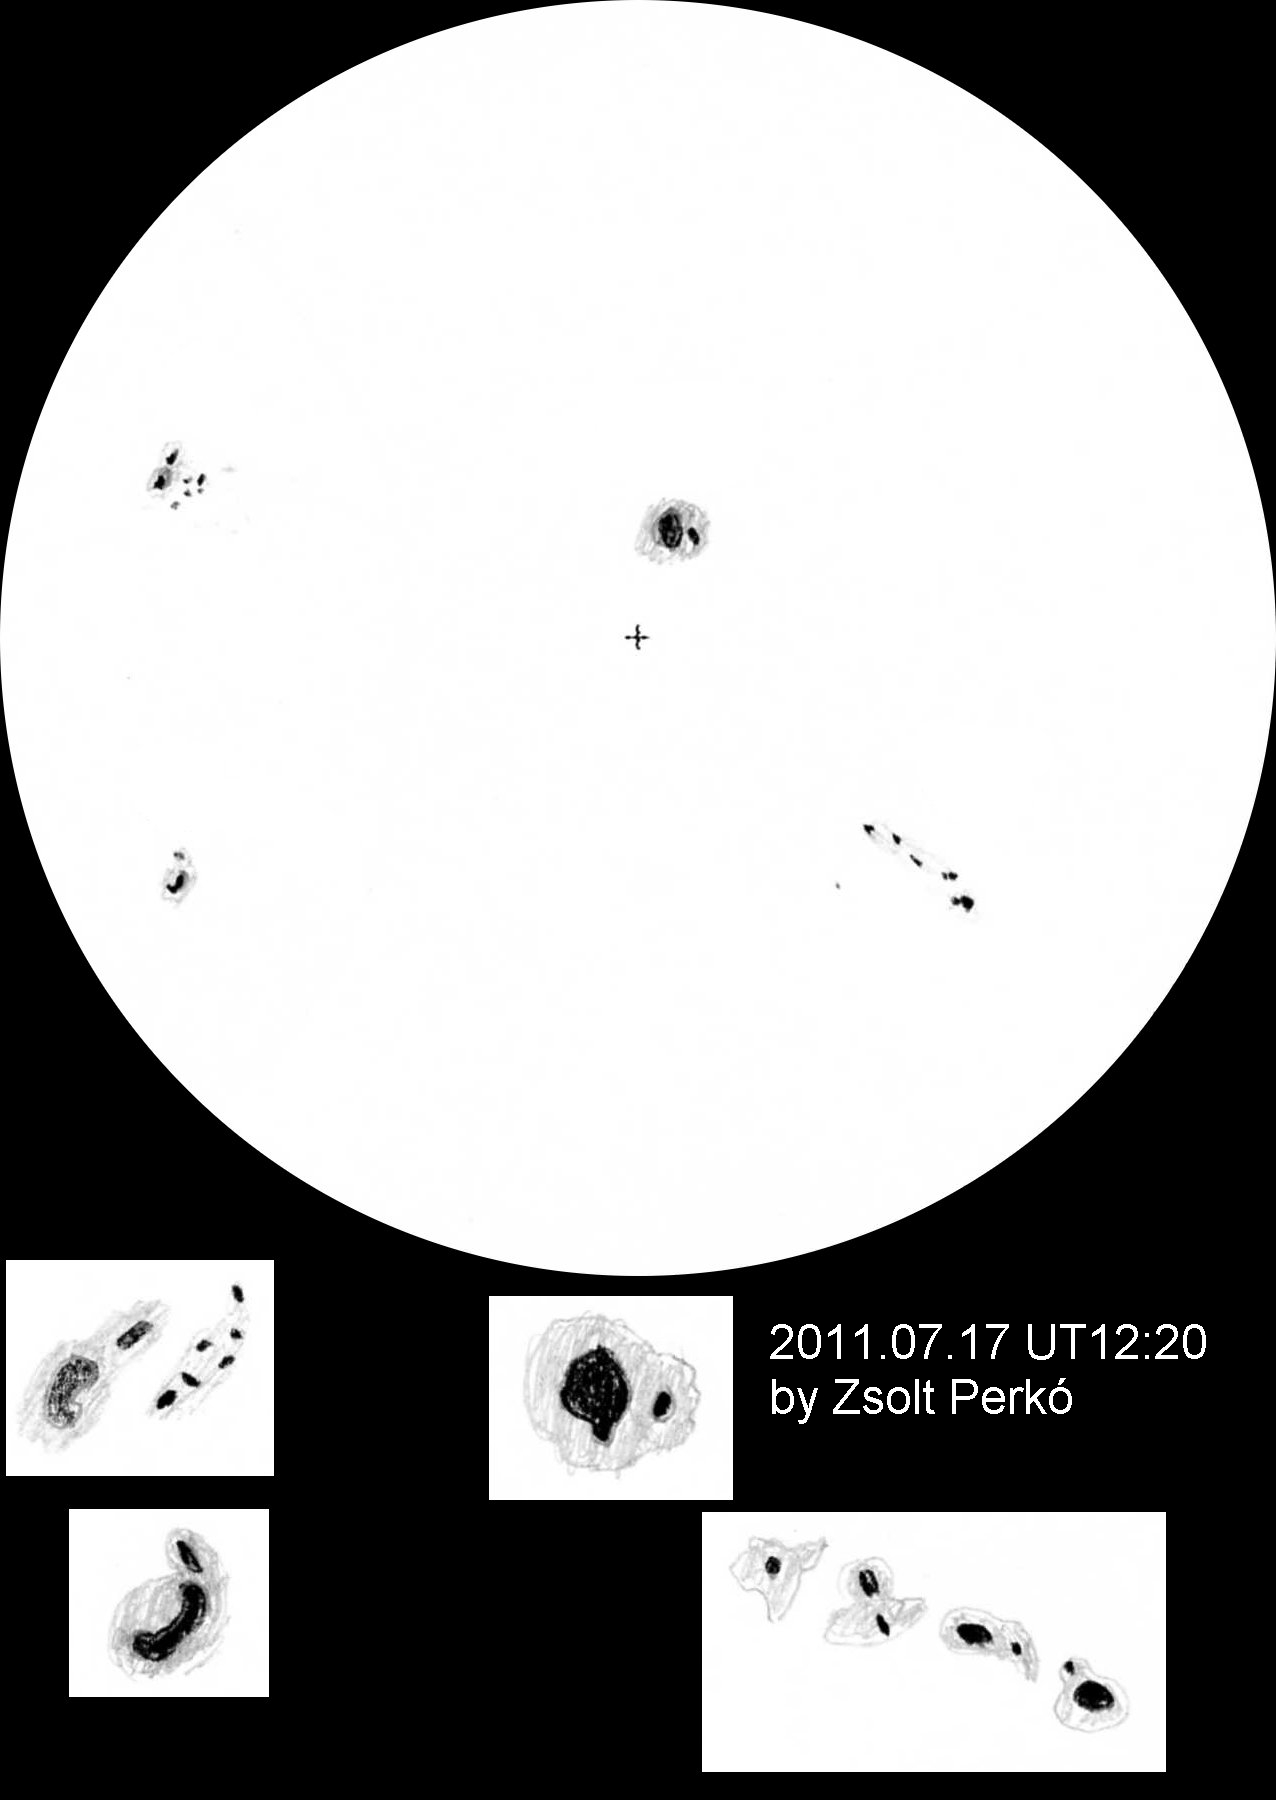 Sunspots - July 17, 2011